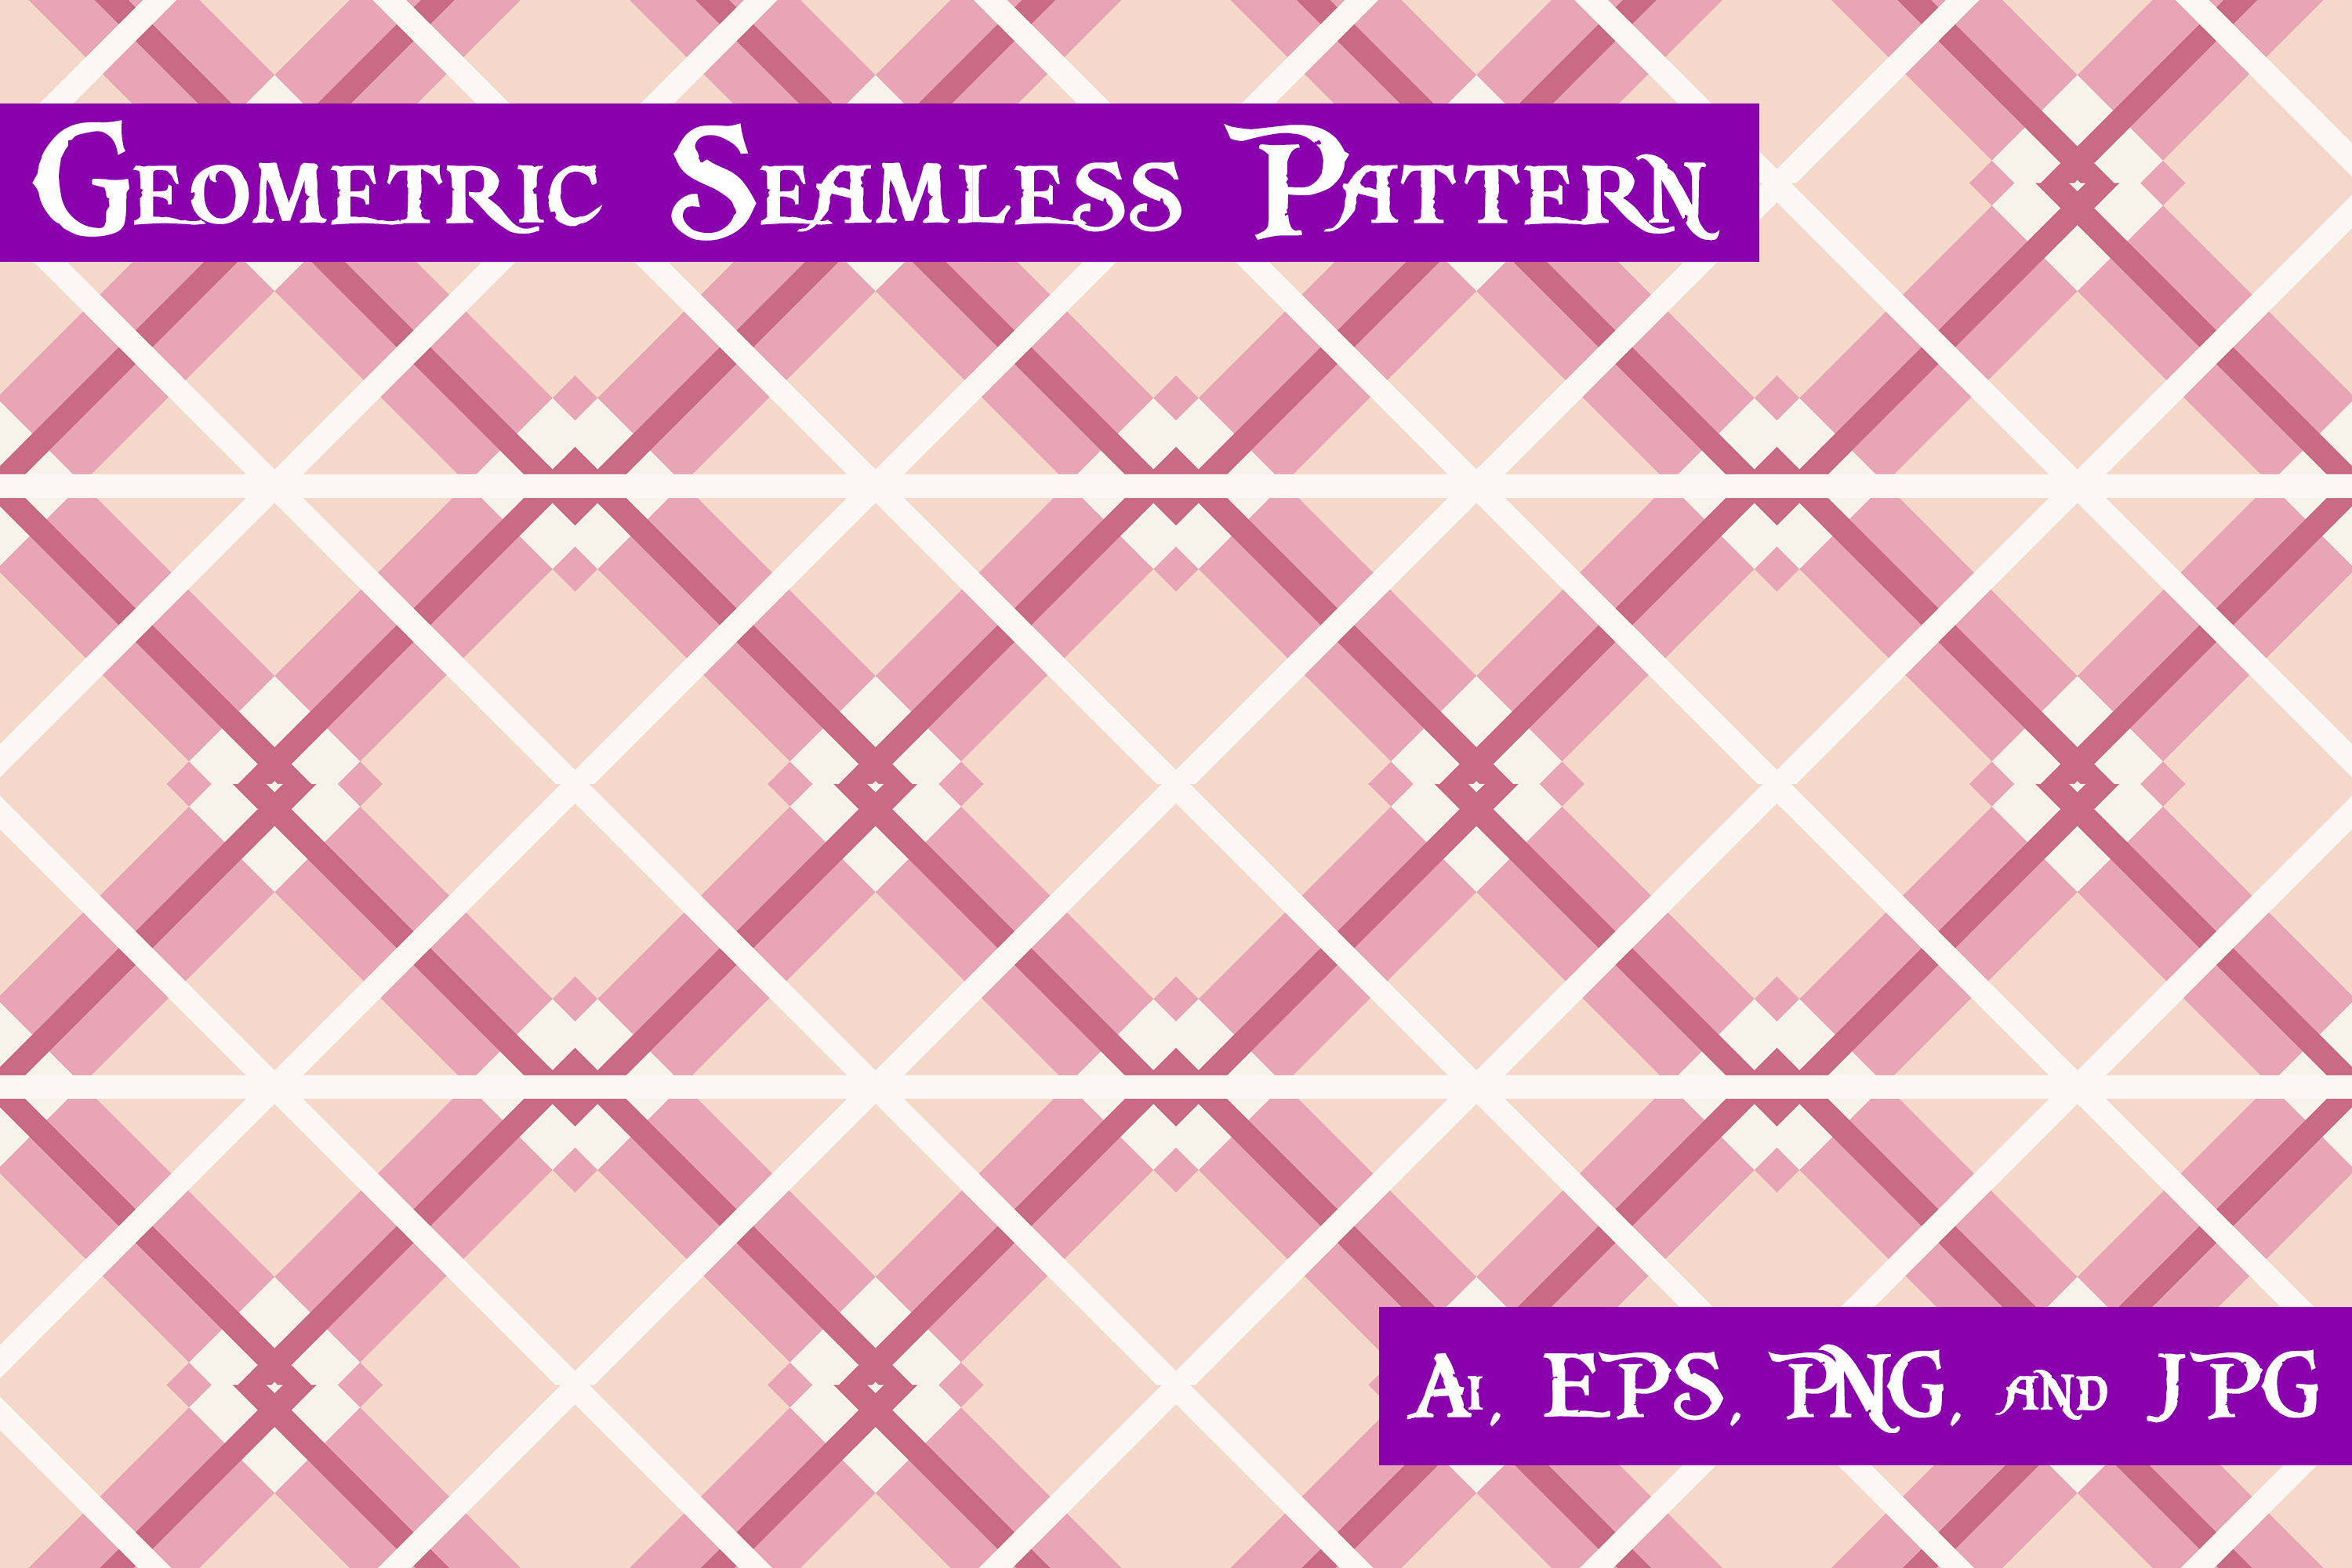 Download Free Geometric Seamless Pattern Graphic By Purplespoonpirates for Cricut Explore, Silhouette and other cutting machines.